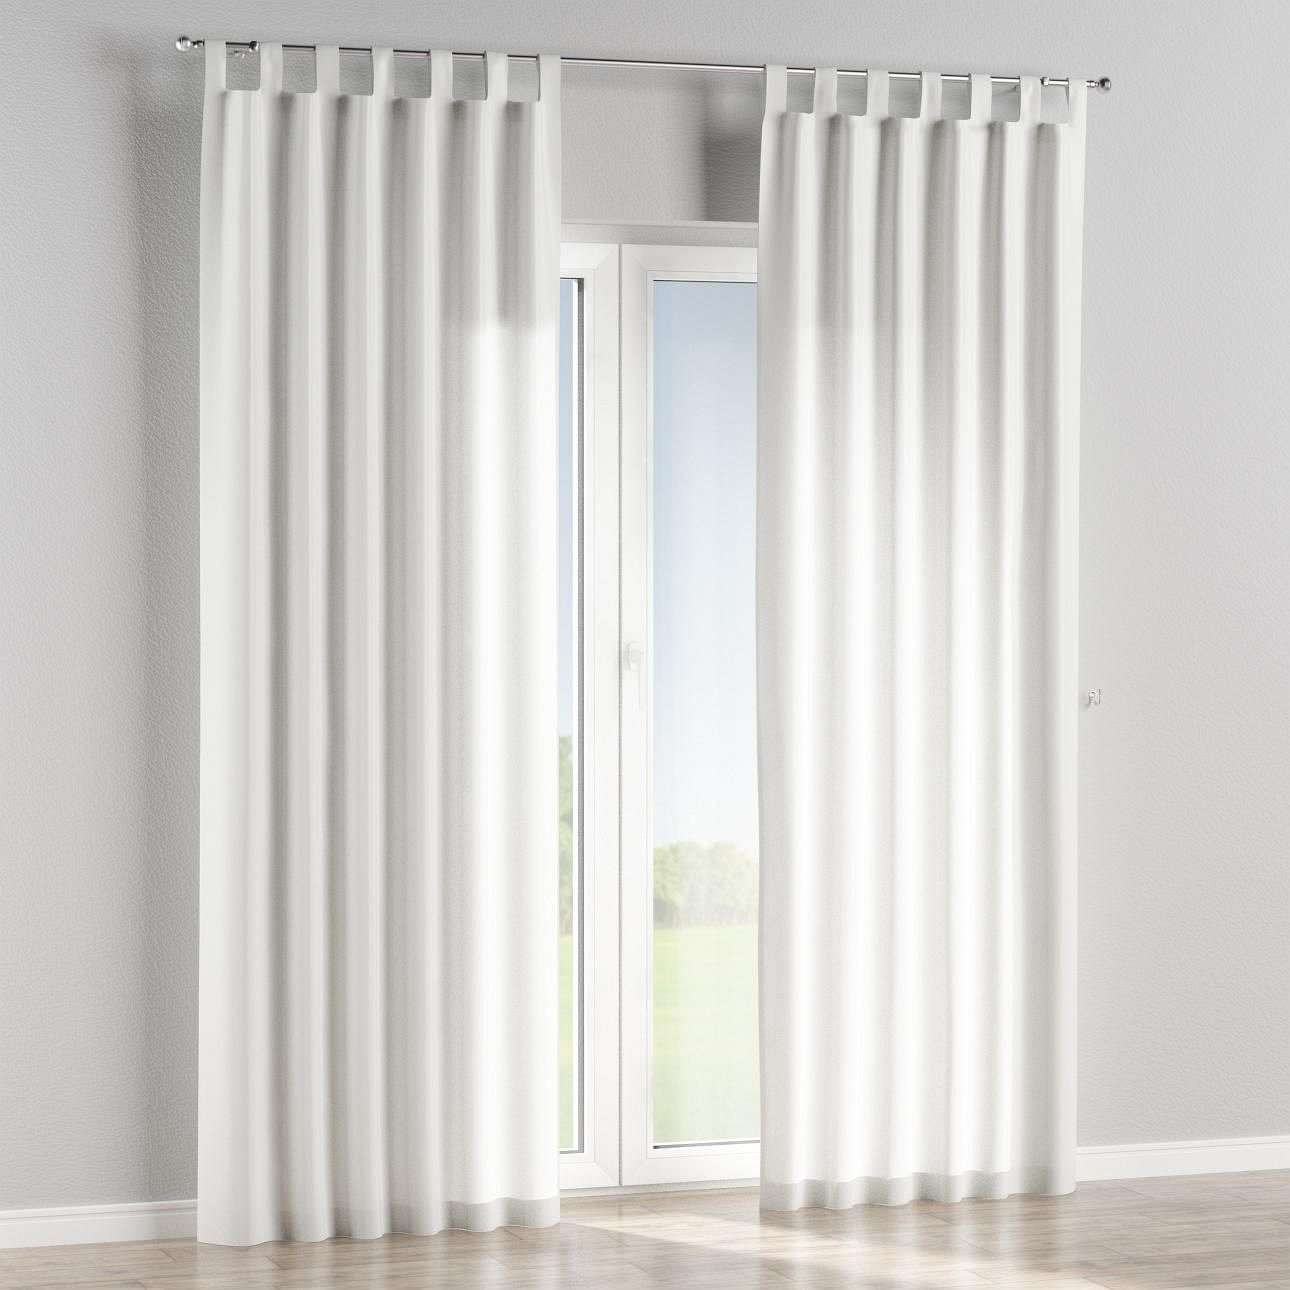 Tab top lined curtains in collection Fleur , fabric: 137-56